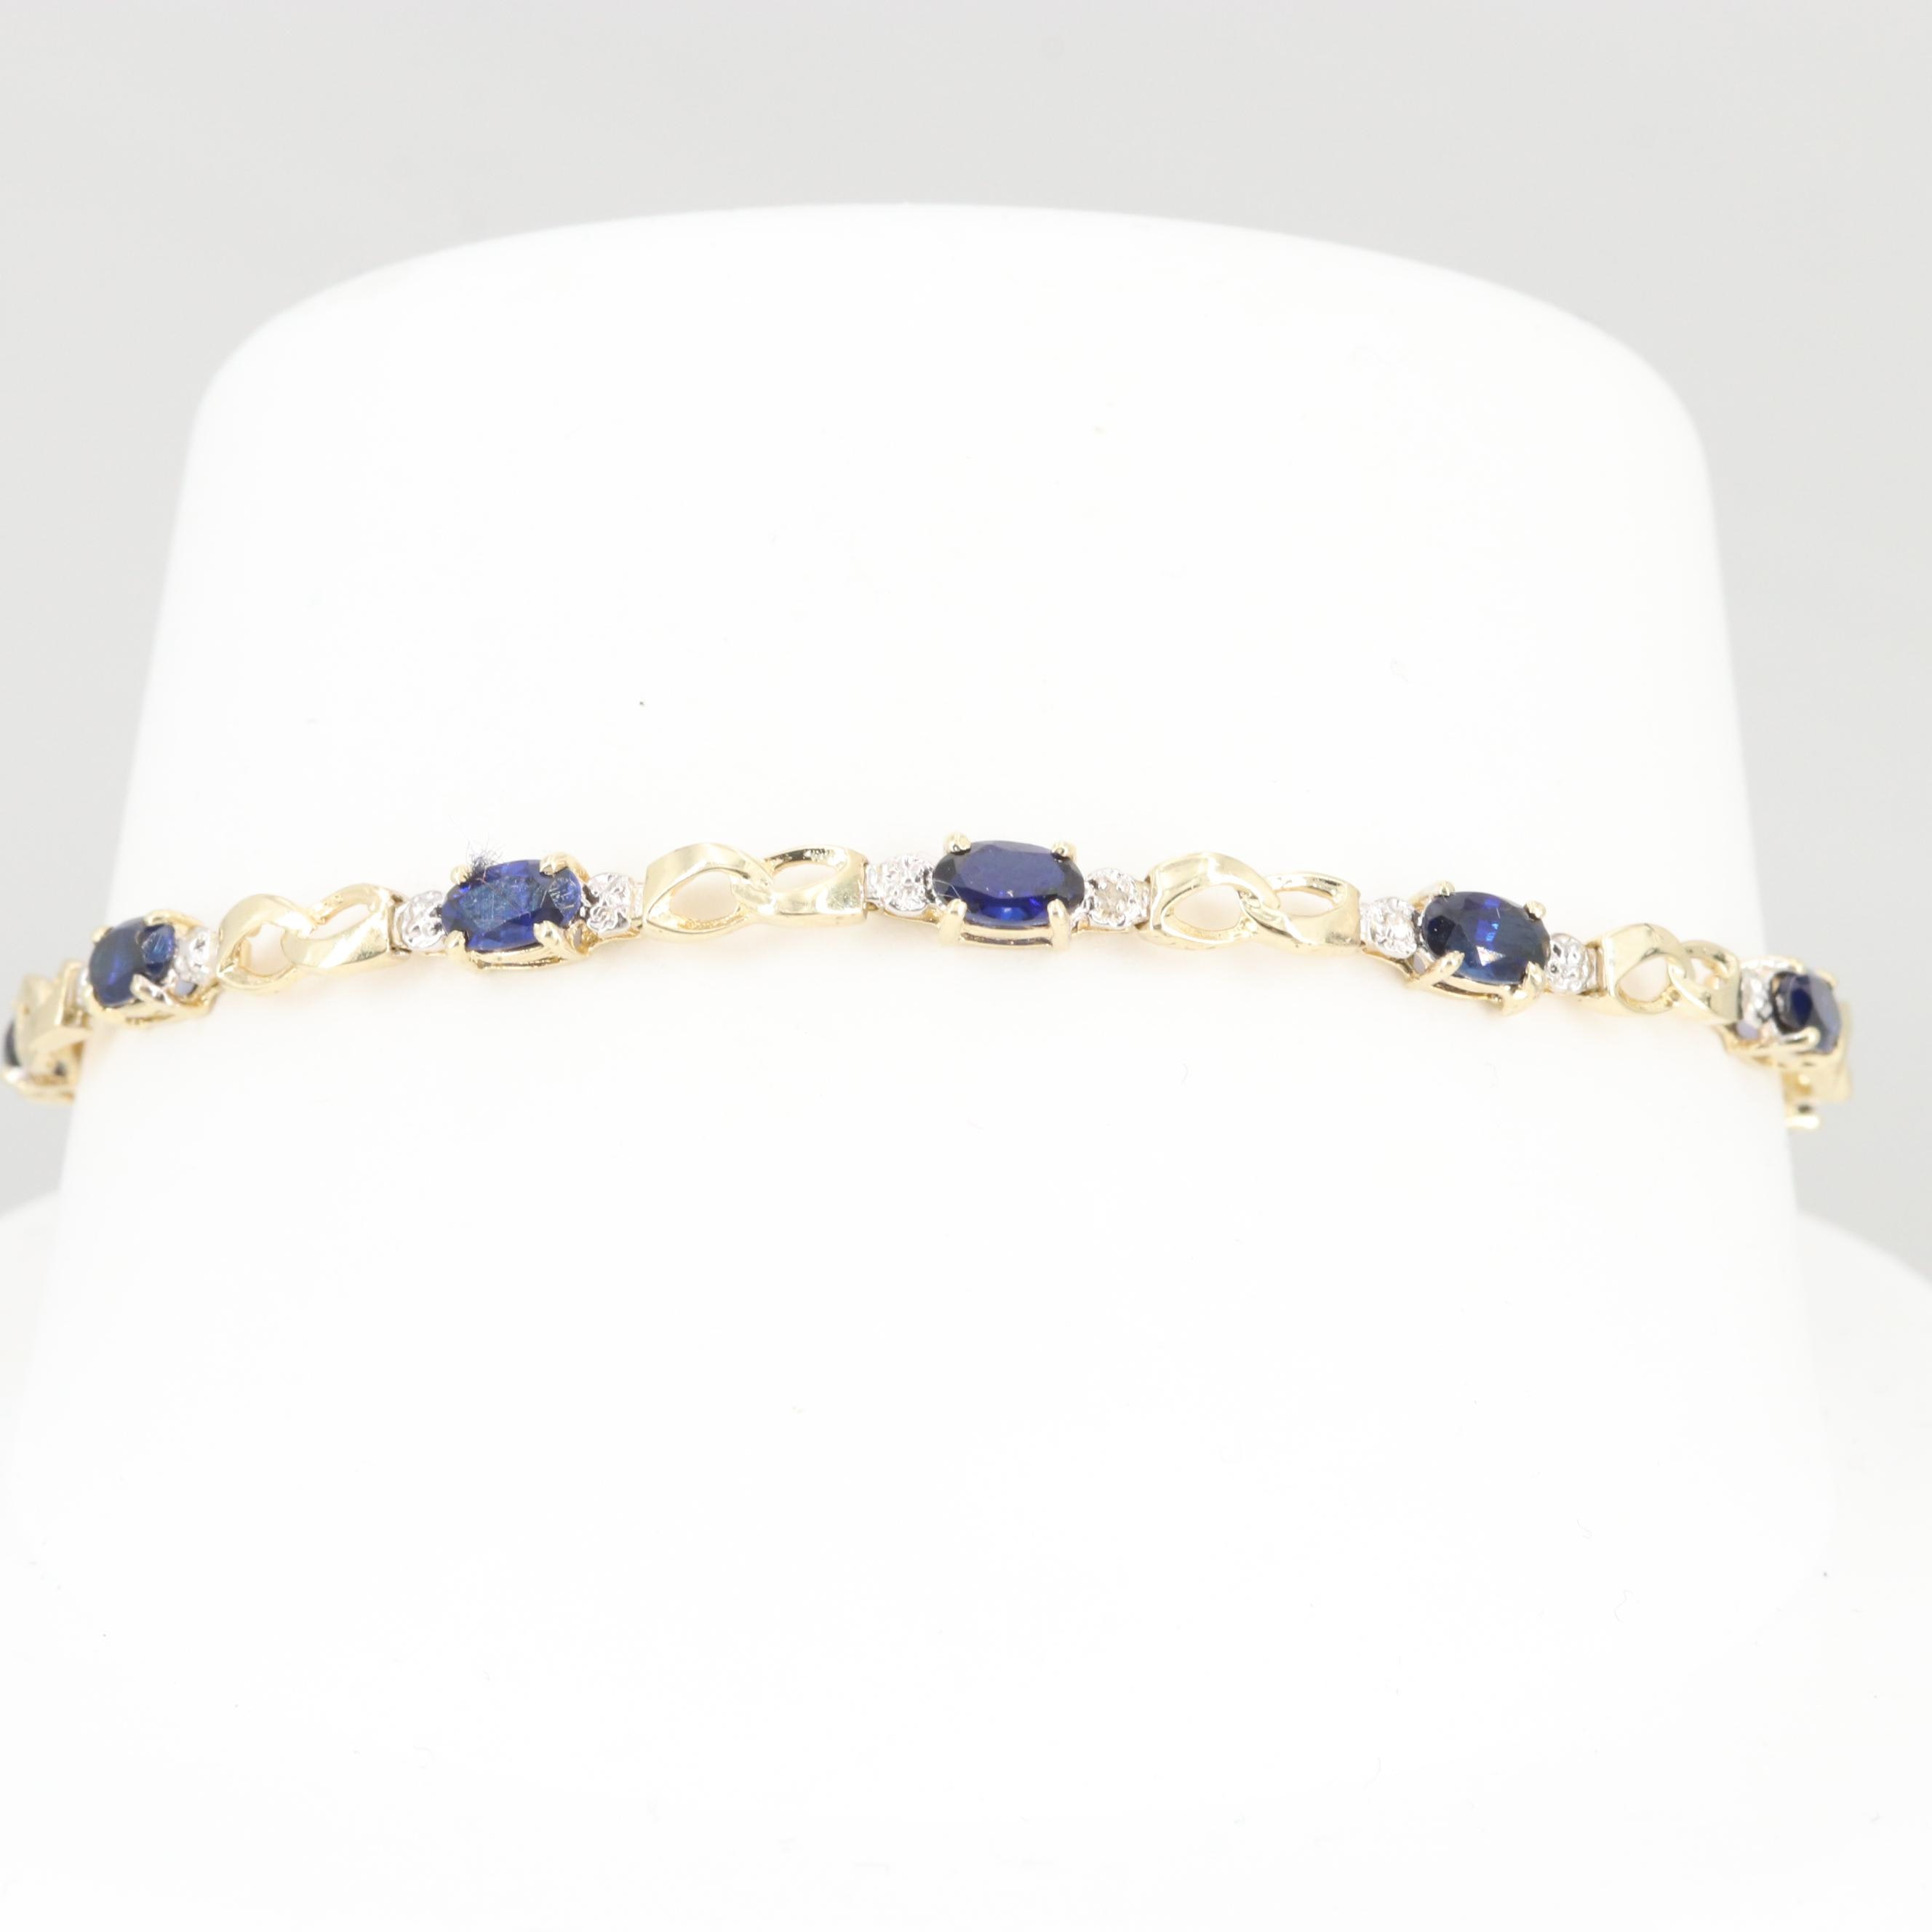 10K Yellow Gold Synthetic Sapphire and Diamond Bracelet